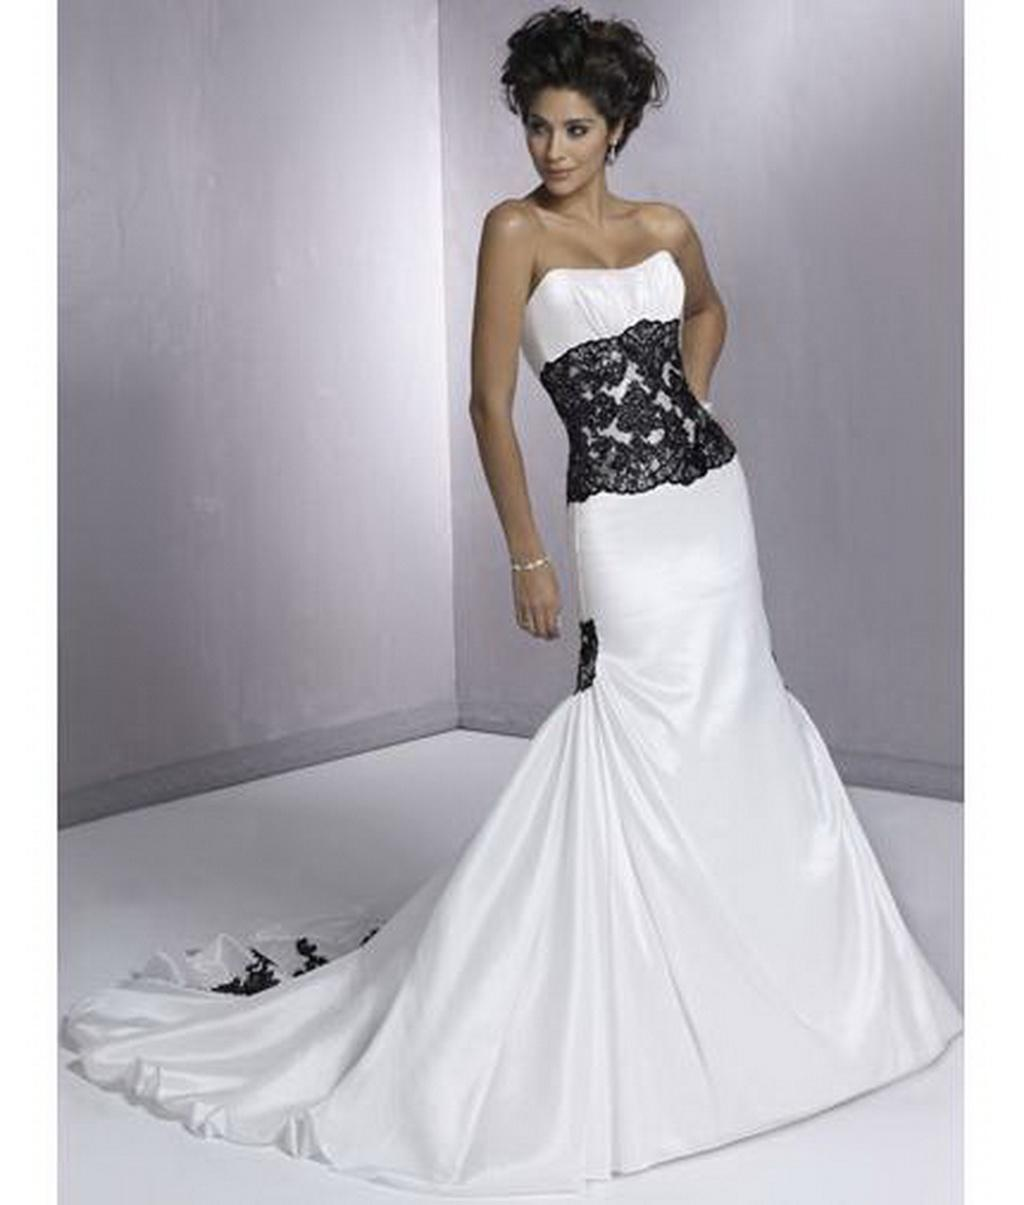 White gothic wedding dresses wedding and bridal inspiration for Pictures of white wedding dresses